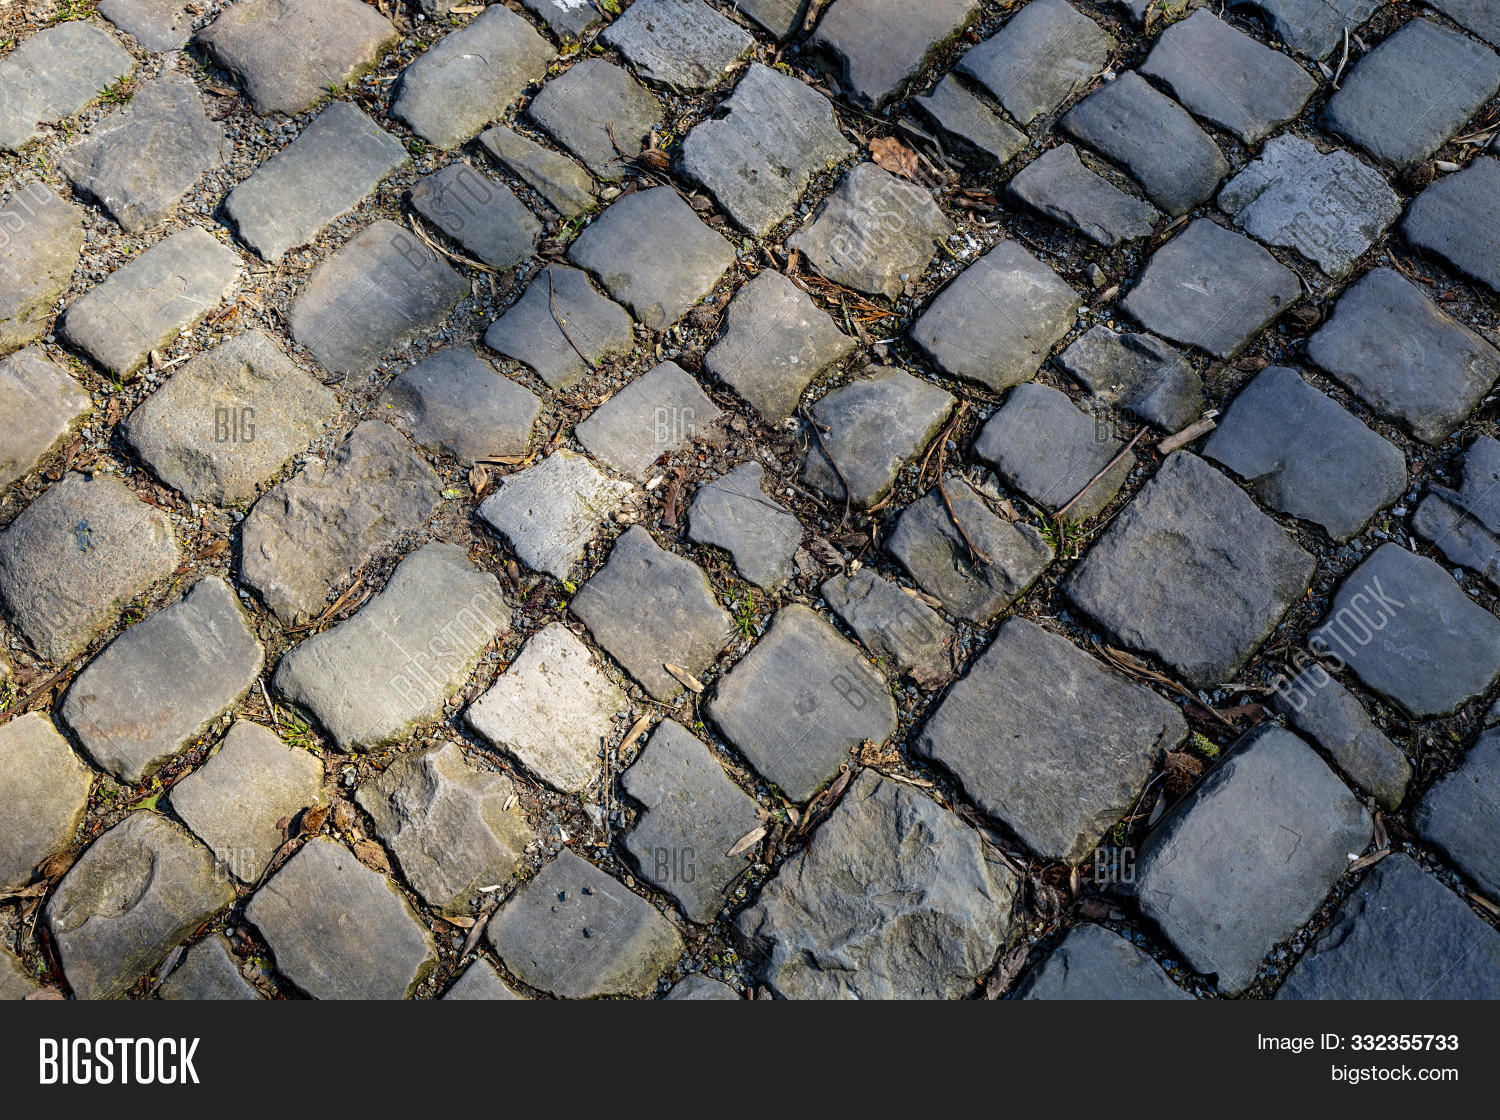 Detail Of The Famous Cobblestone Road Muur Van Geraardsbergen Located In Belgium. On This Road Every